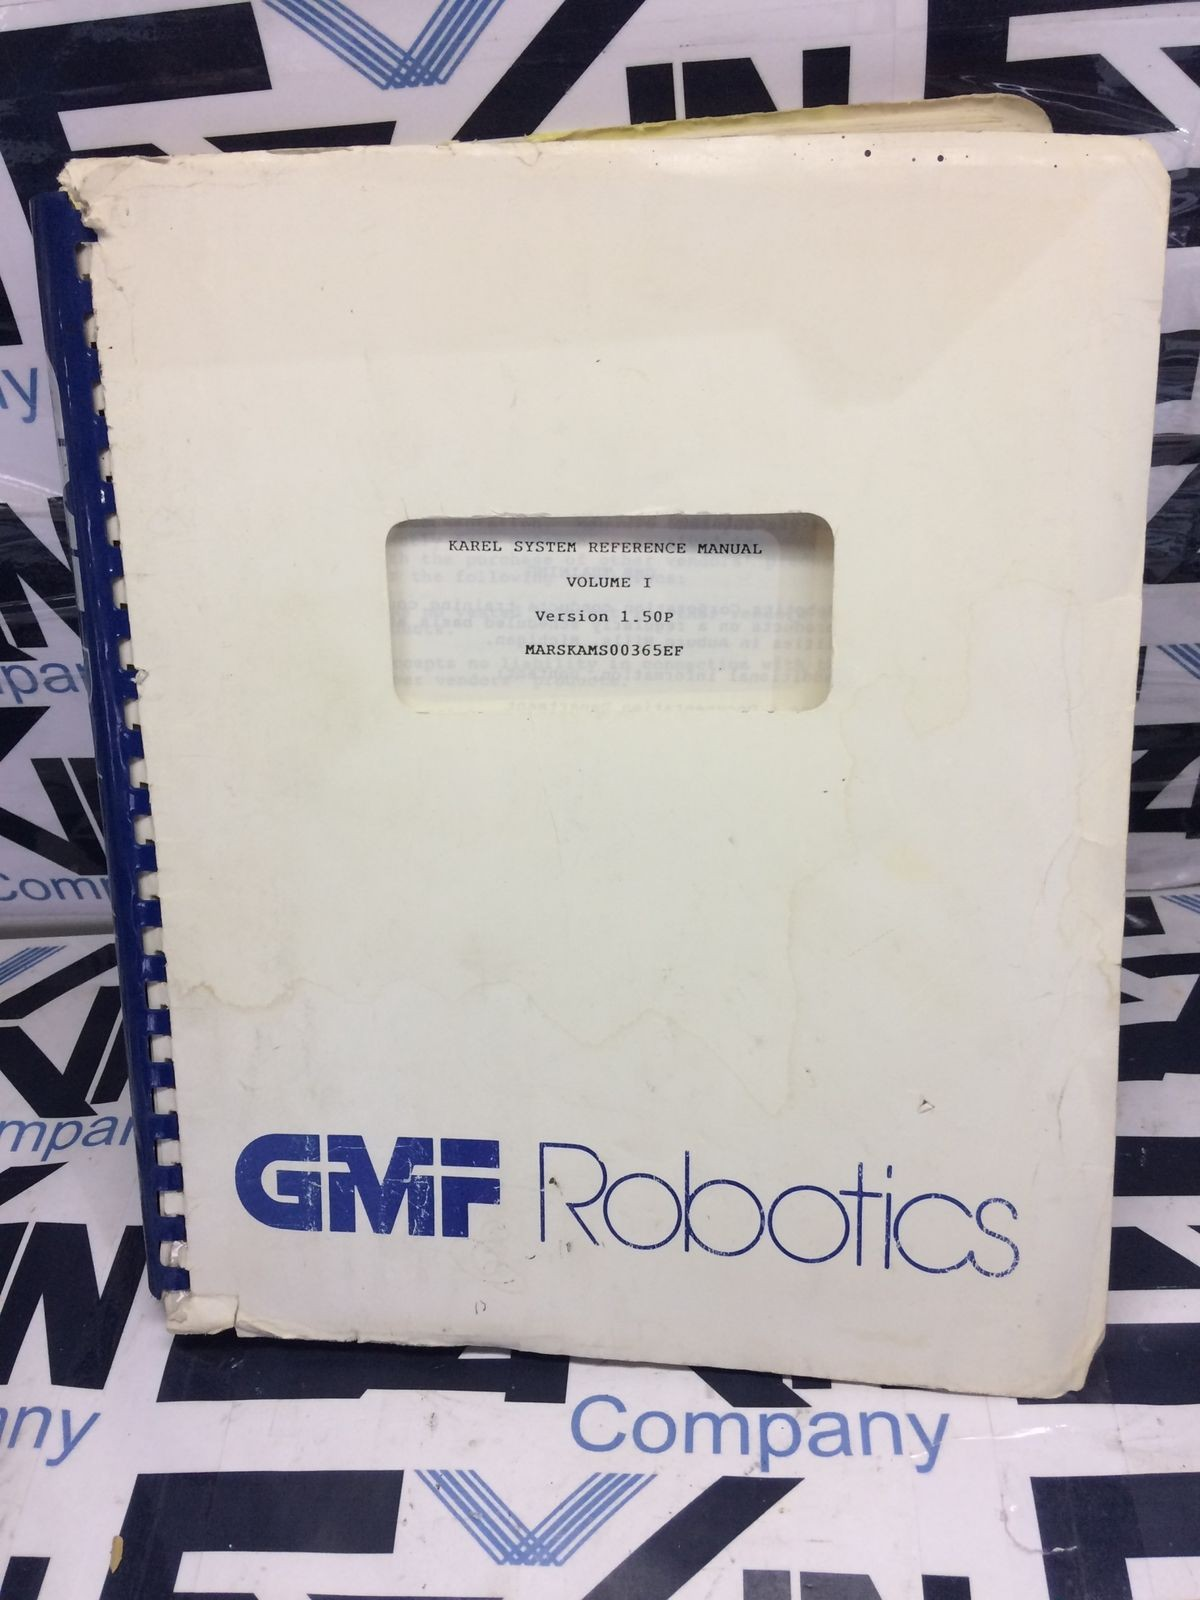 Fanuc KAREL Operations Manual GMF Robotics V1.50P VOL.1